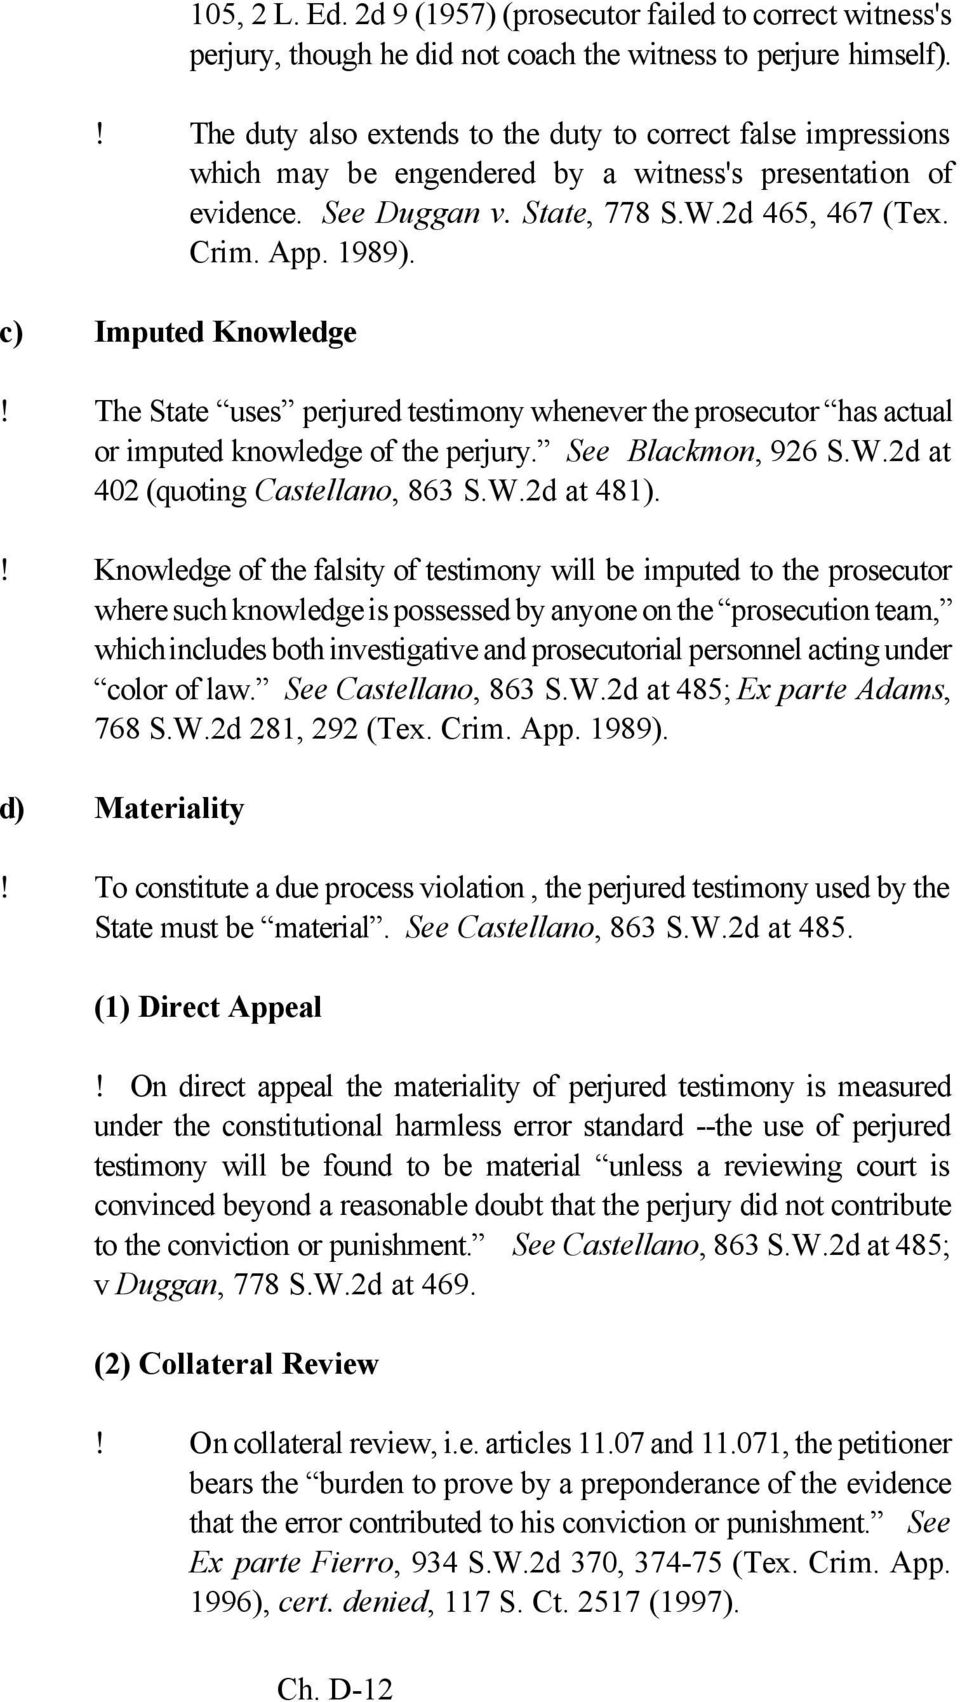 c) Imputed Knowledge! The State uses perjured testimony whenever the prosecutor has actual or imputed knowledge of the perjury. See Blackmon, 926 S.W.2d at 402 (quoting Castellano, 863 S.W.2d at 481).